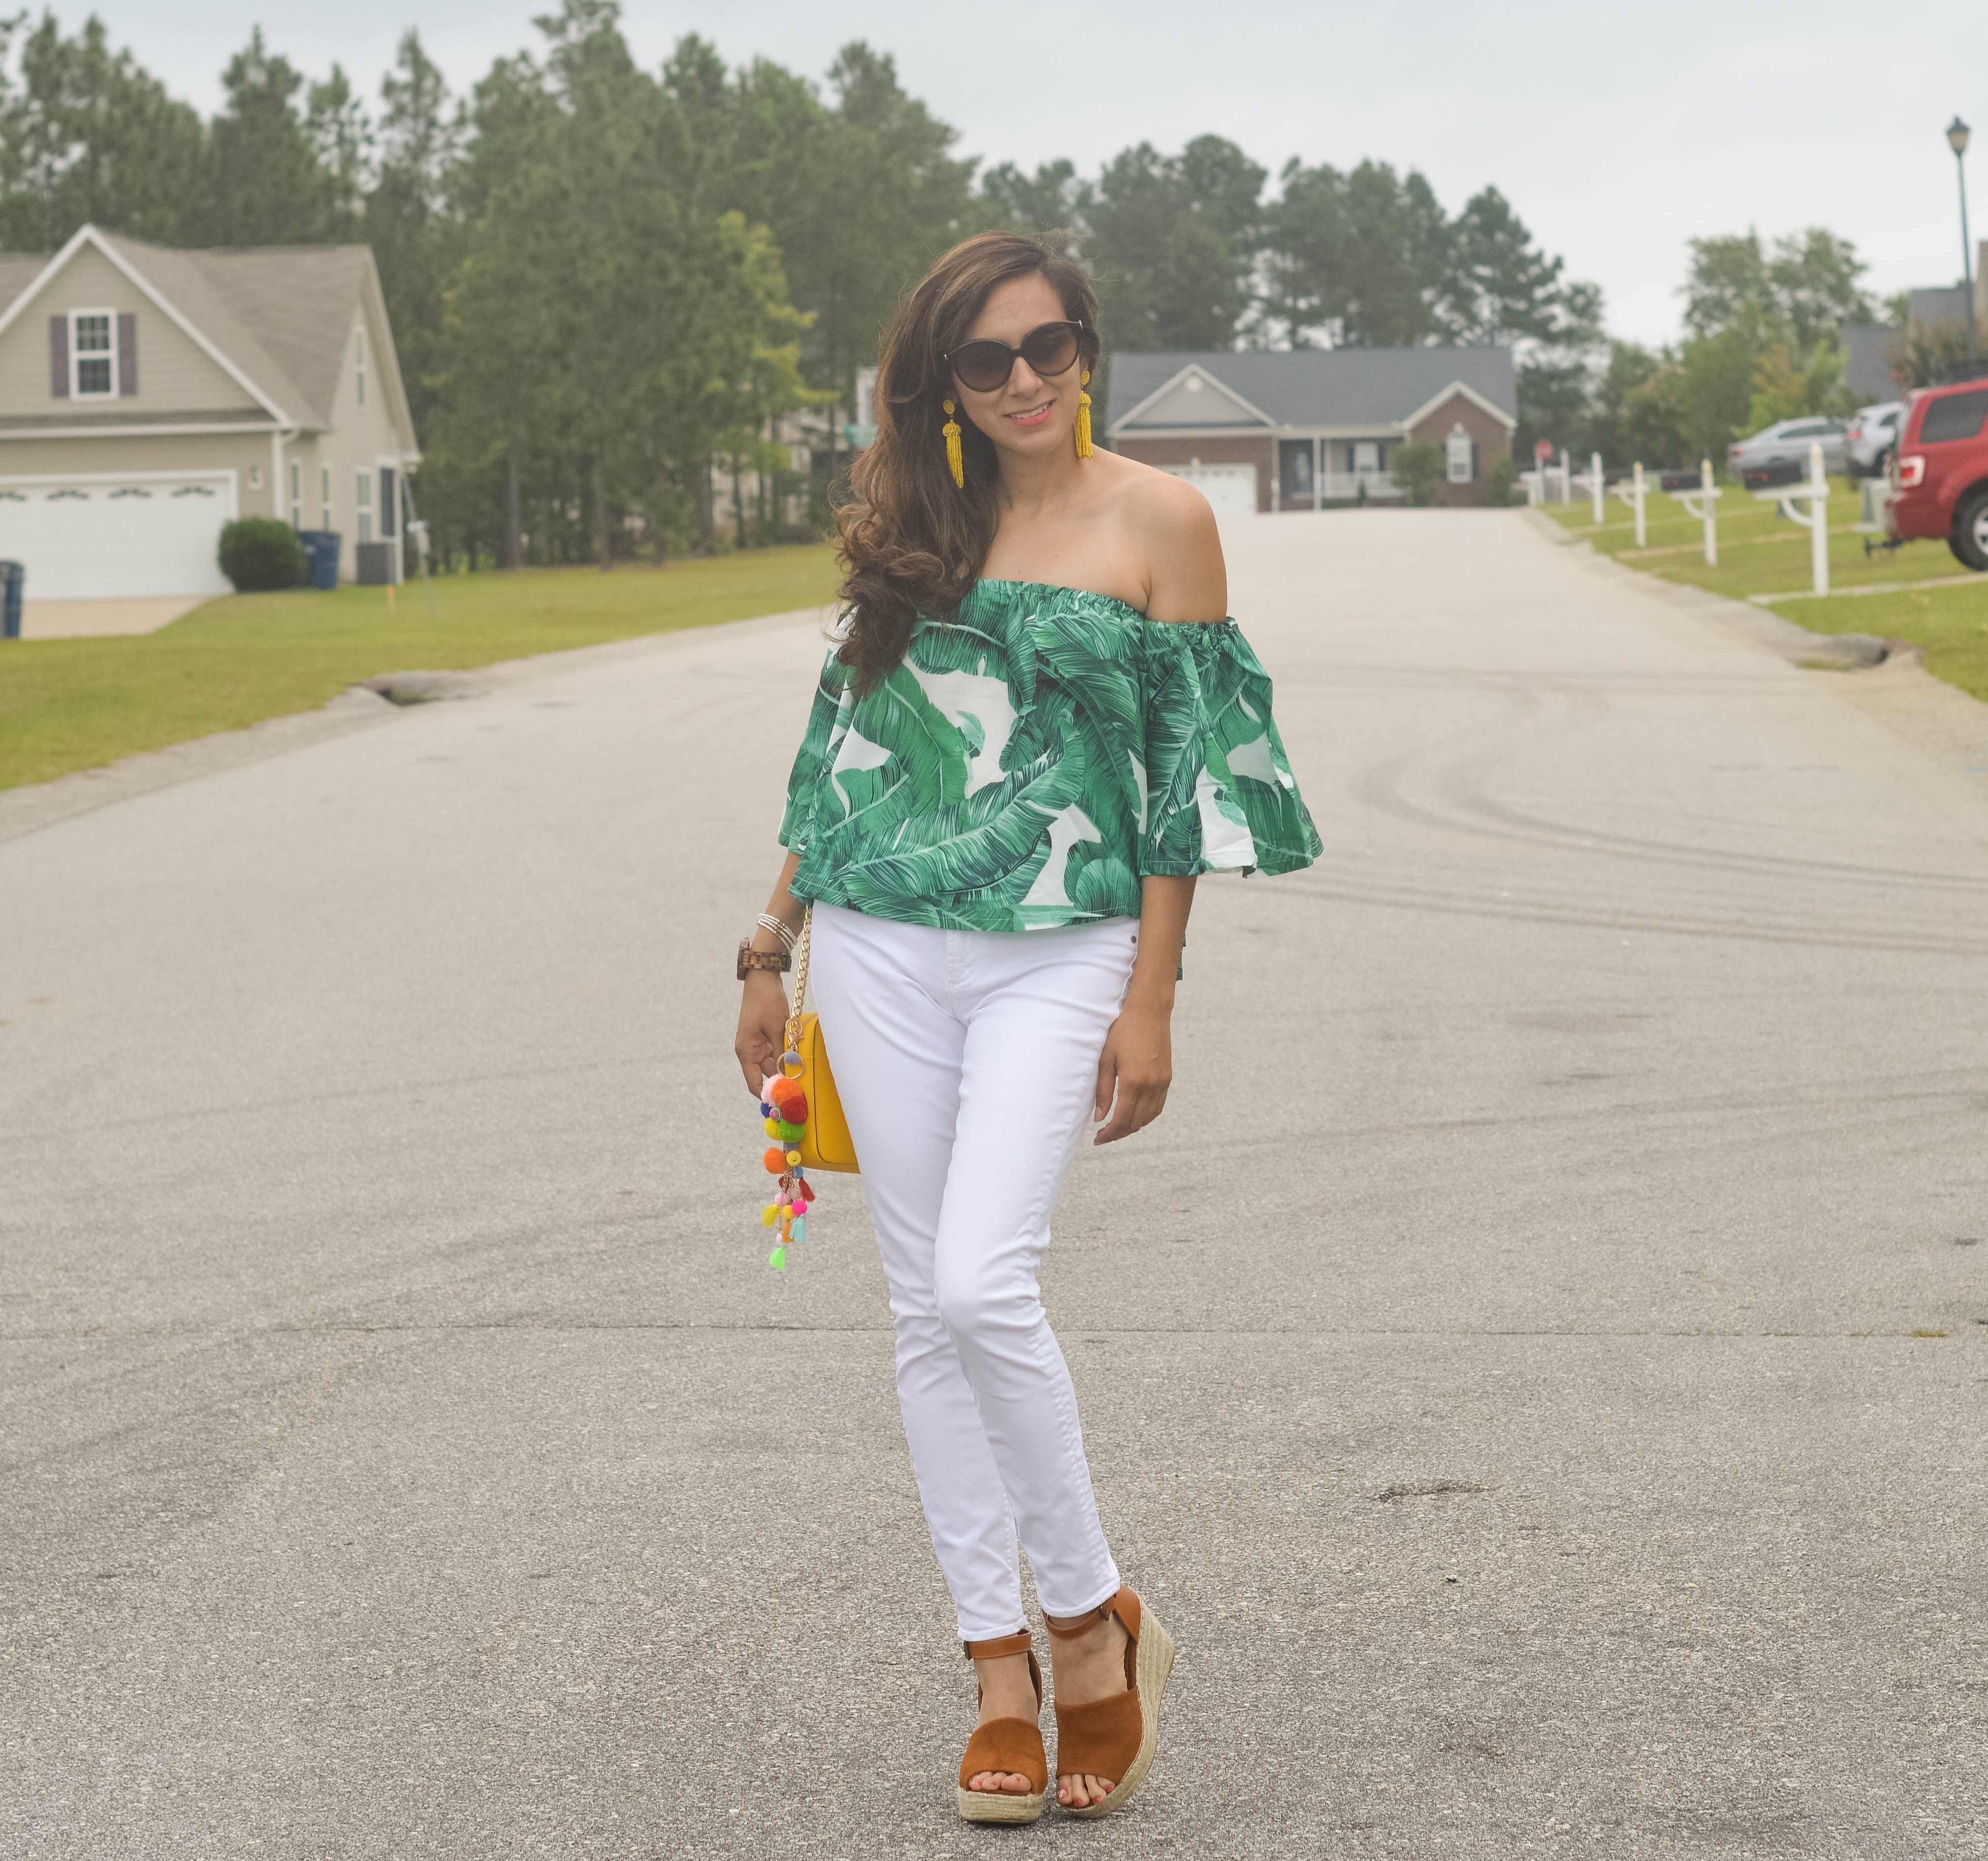 Giveaways, the truth behind giveaways kiwi&ellie, accessories, palm print, OTS, palm print OTS, shein, whatiwore, daring, liketoknow.it, summer shopping, women clothes, fashion, stylist, shop my blog, shop what I wear, color, fashion blog, fashion blogger, fashion, ootd,